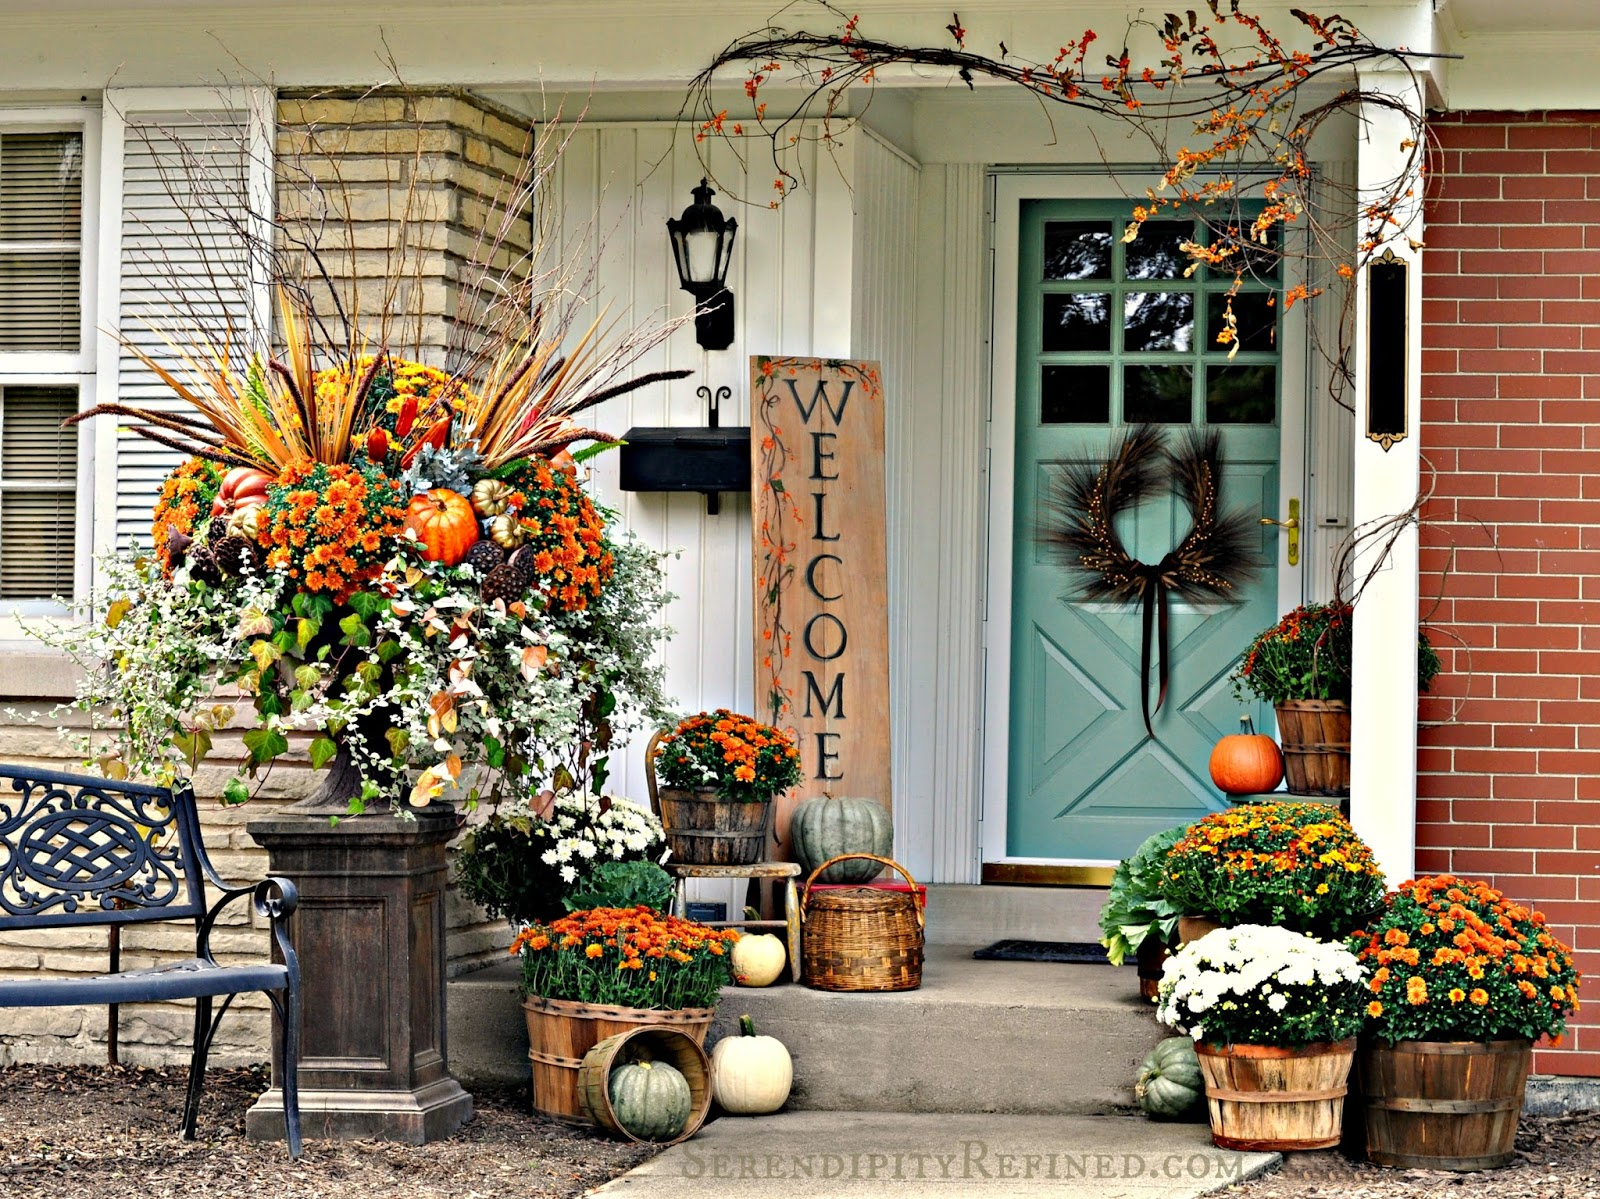 Serendipity Refined Blog: Fall Harvest Porch Decor with